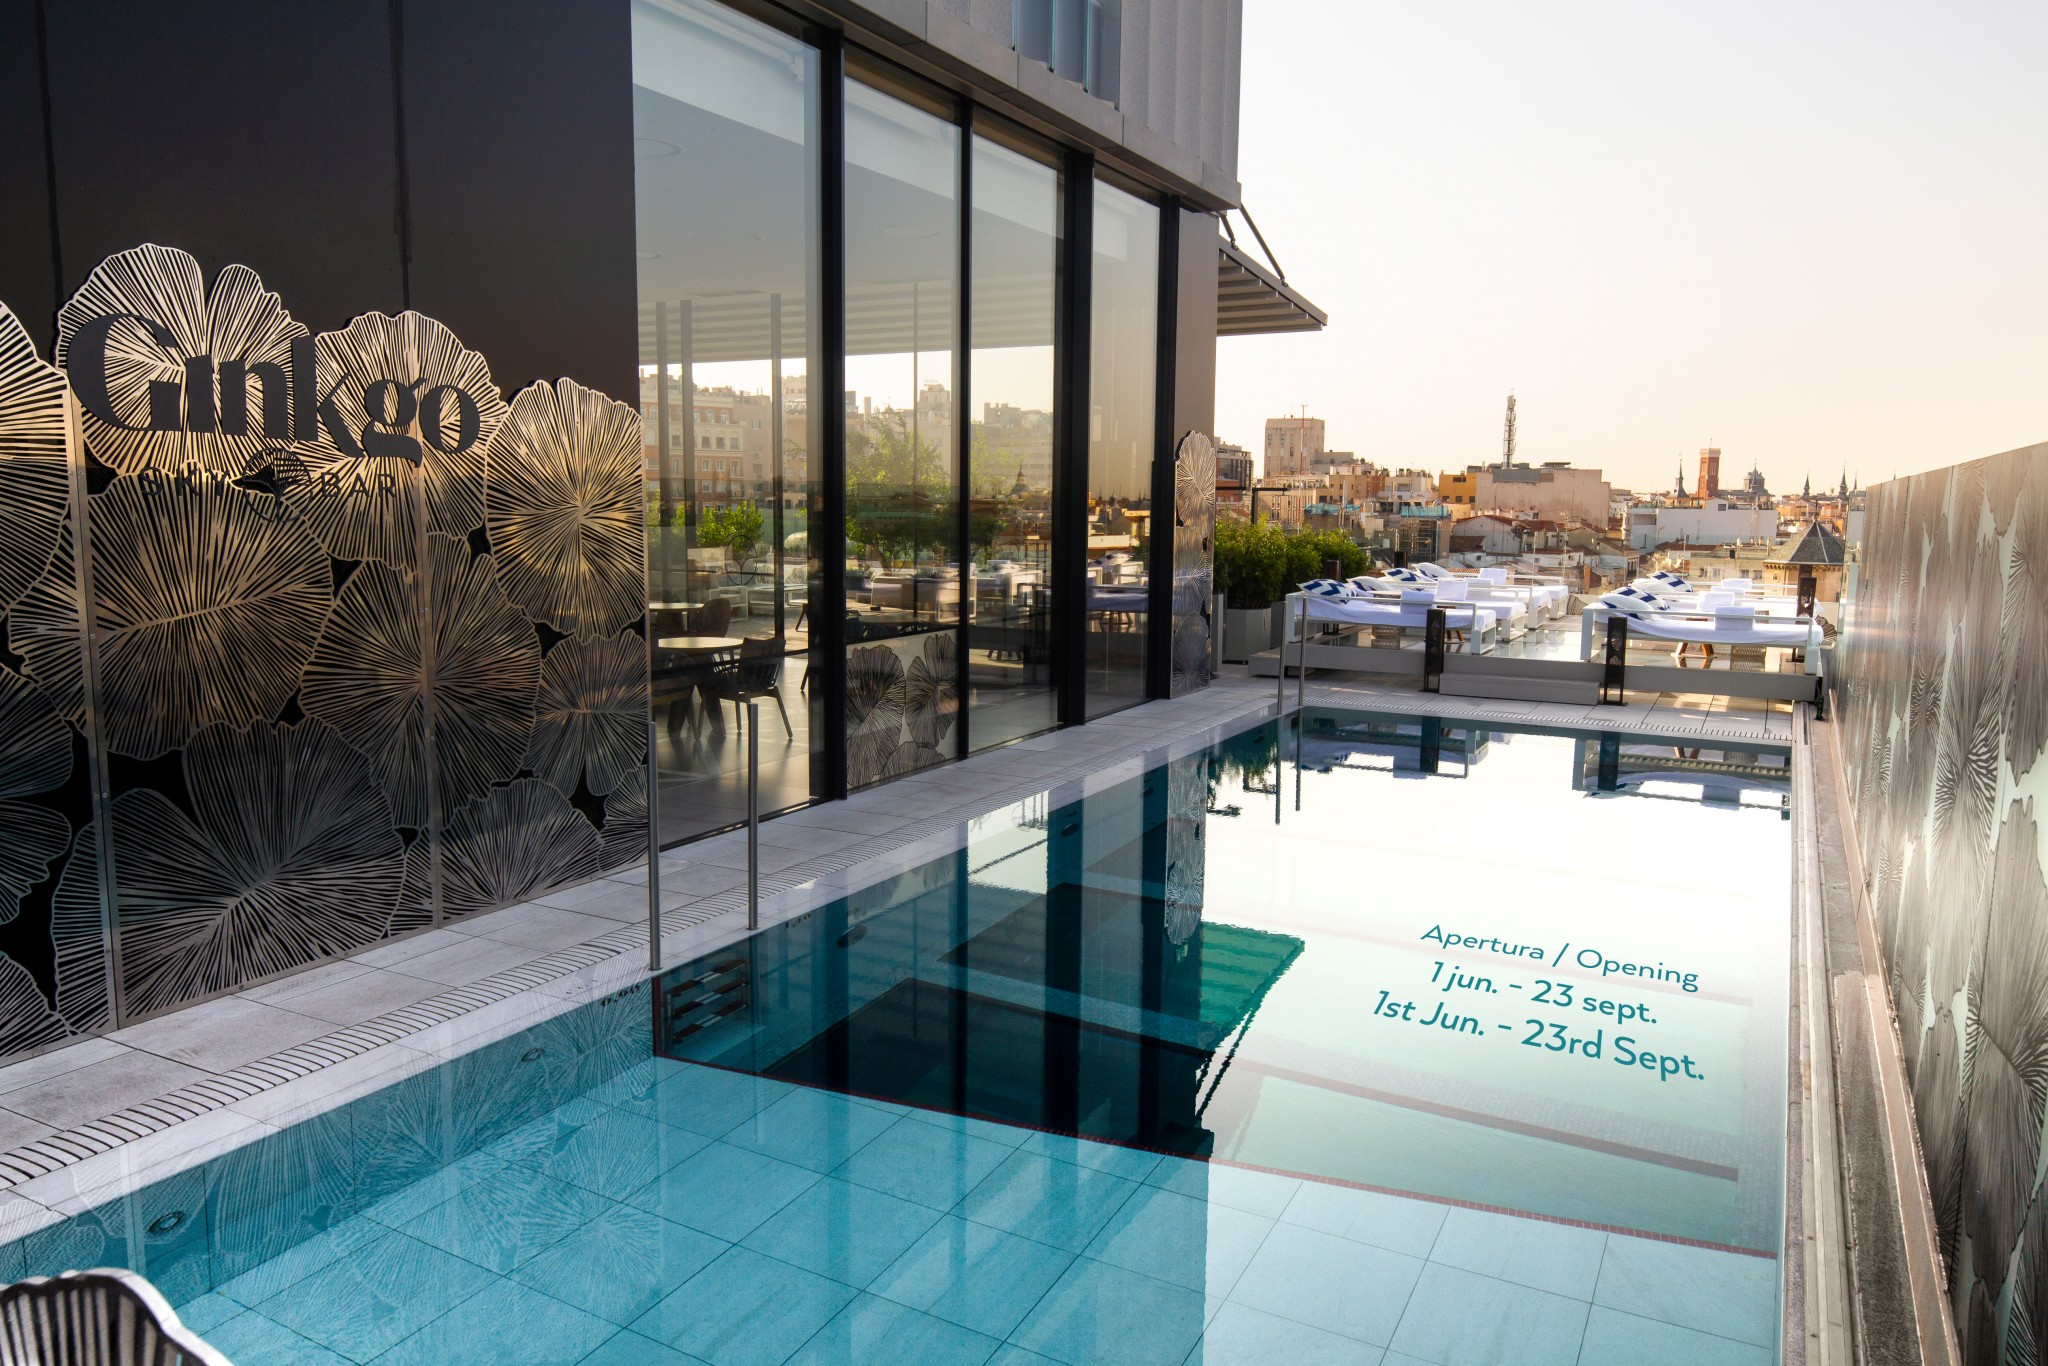 Vp plaza espa a design hotel 5 estrellas madrid p gina for Design hotel madrid